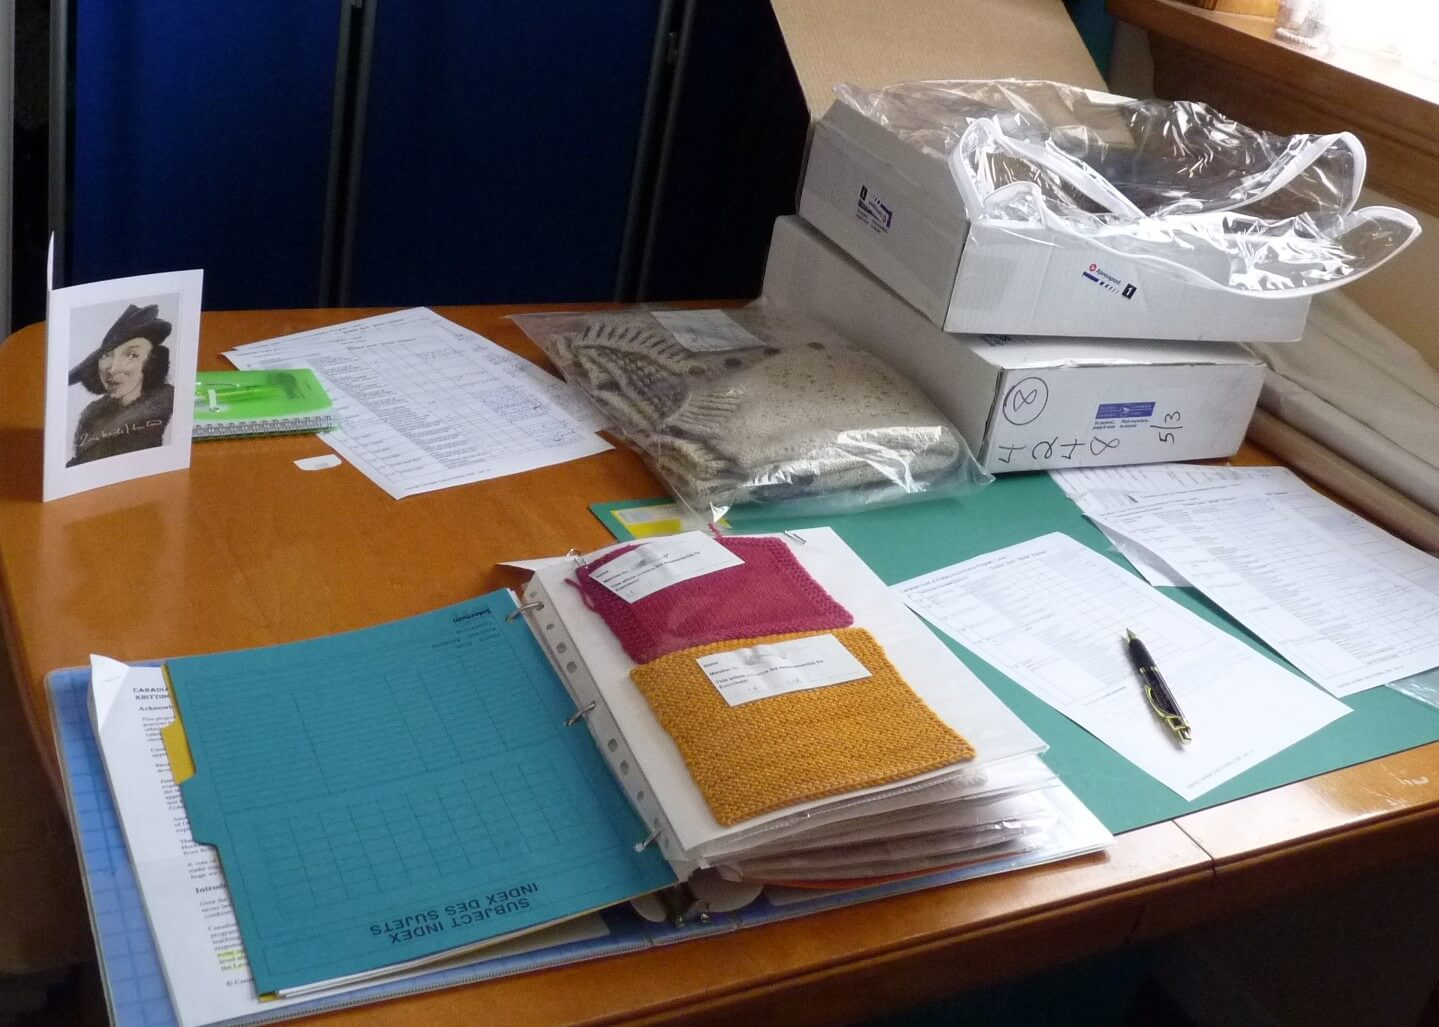 A table covered with materials - a binder with samples, pages of evaluation forms, and packaging material